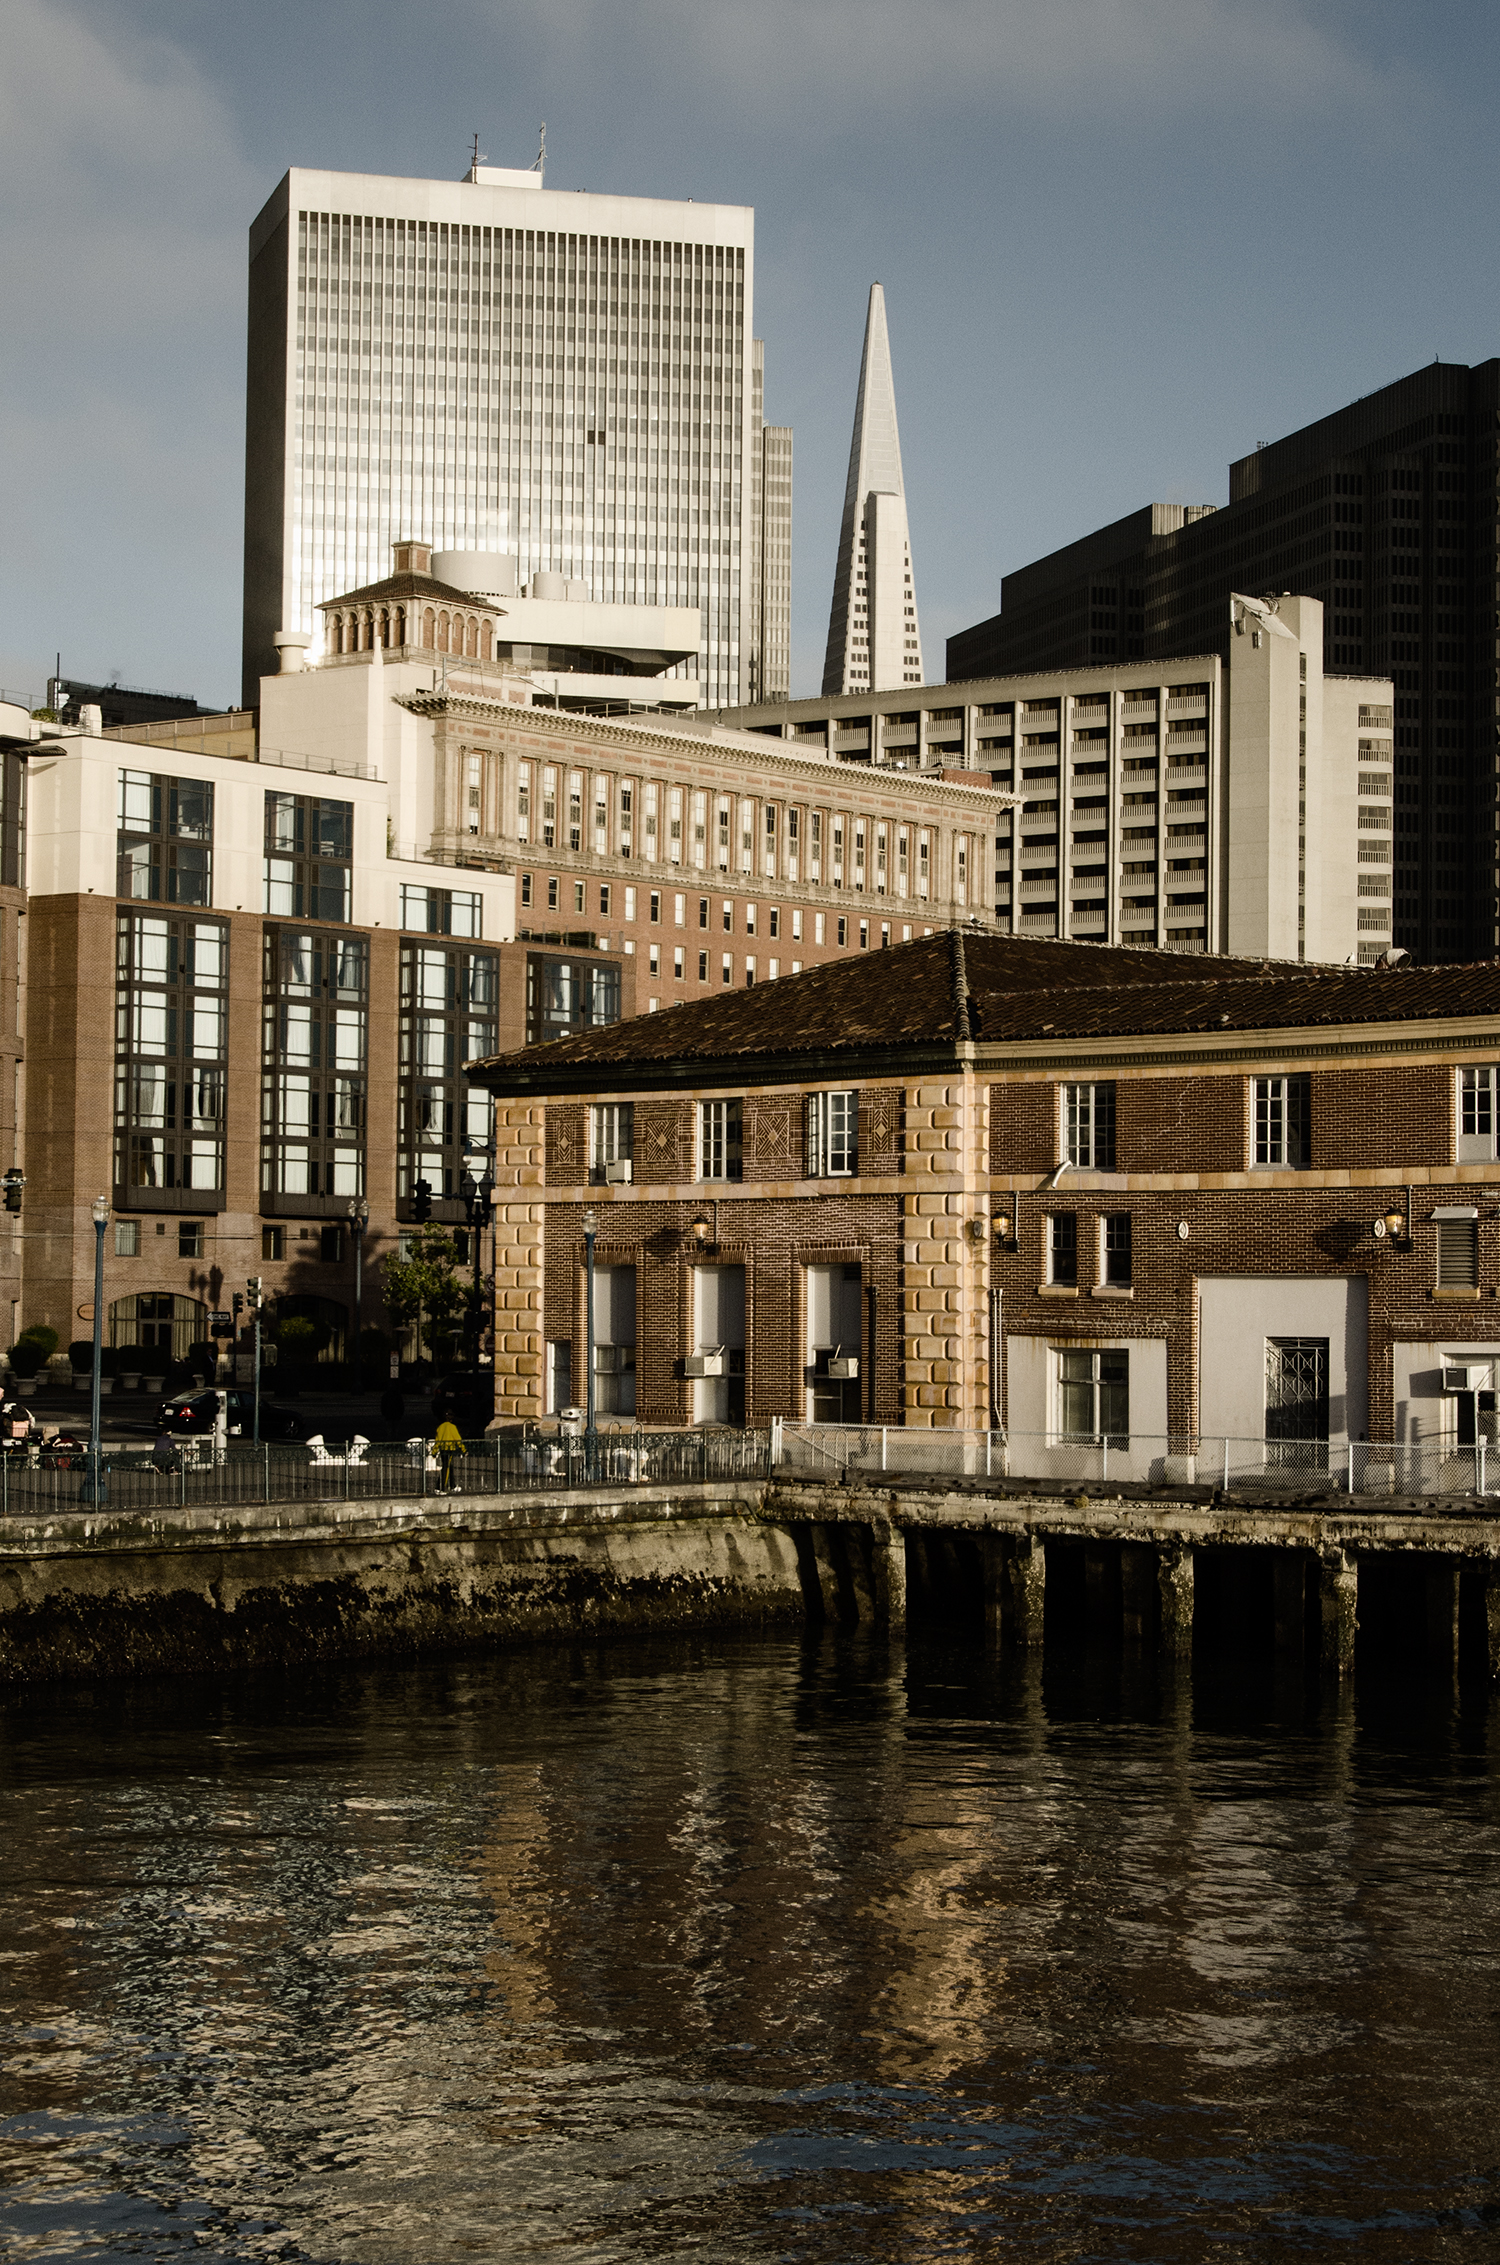 TransAmerica Pyramid & Historic Waterfront From Pier 14